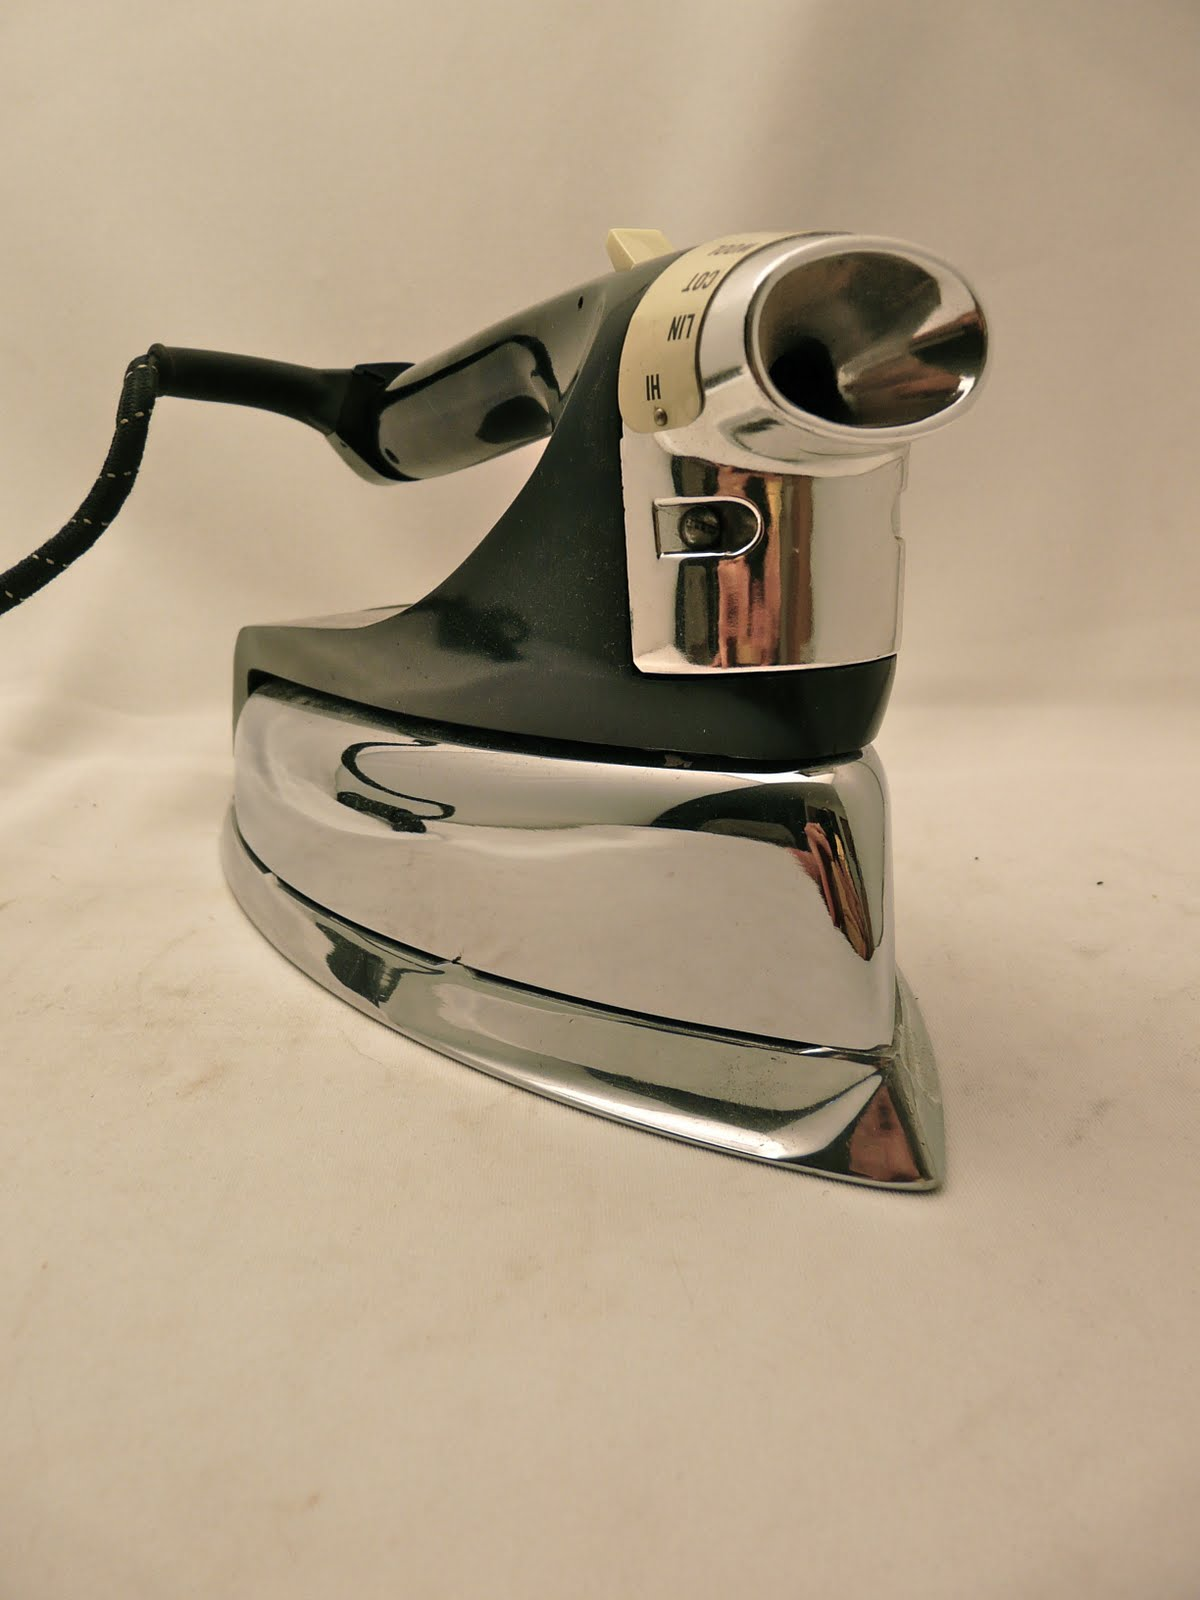 Old Electric Iron ~ Dormeyer vintage electric irons